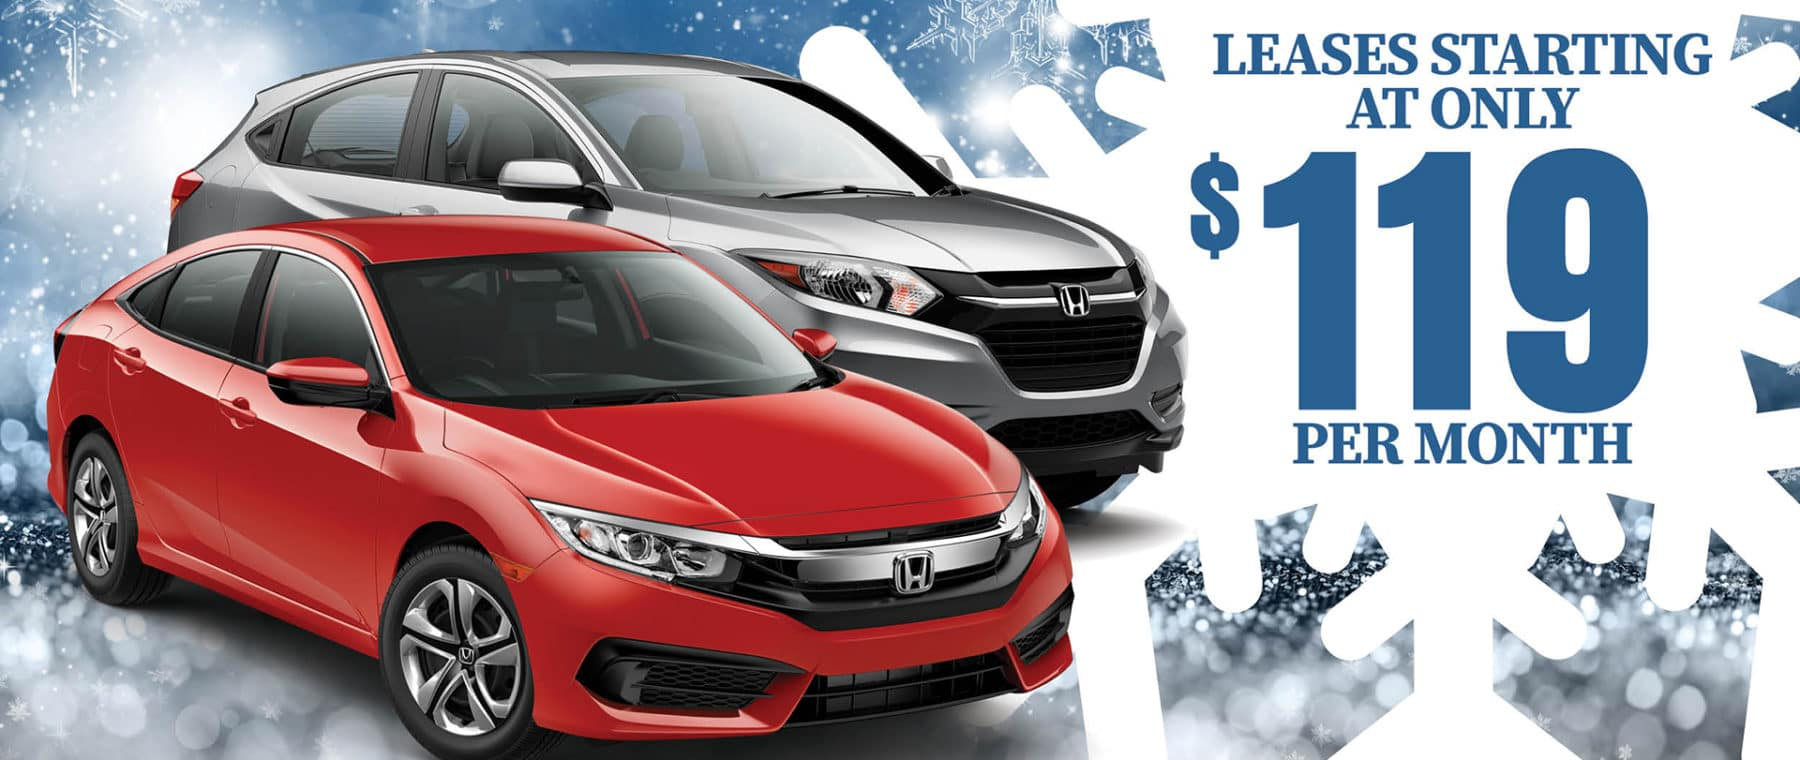 WETH-0118-NewCarSpecials-banner